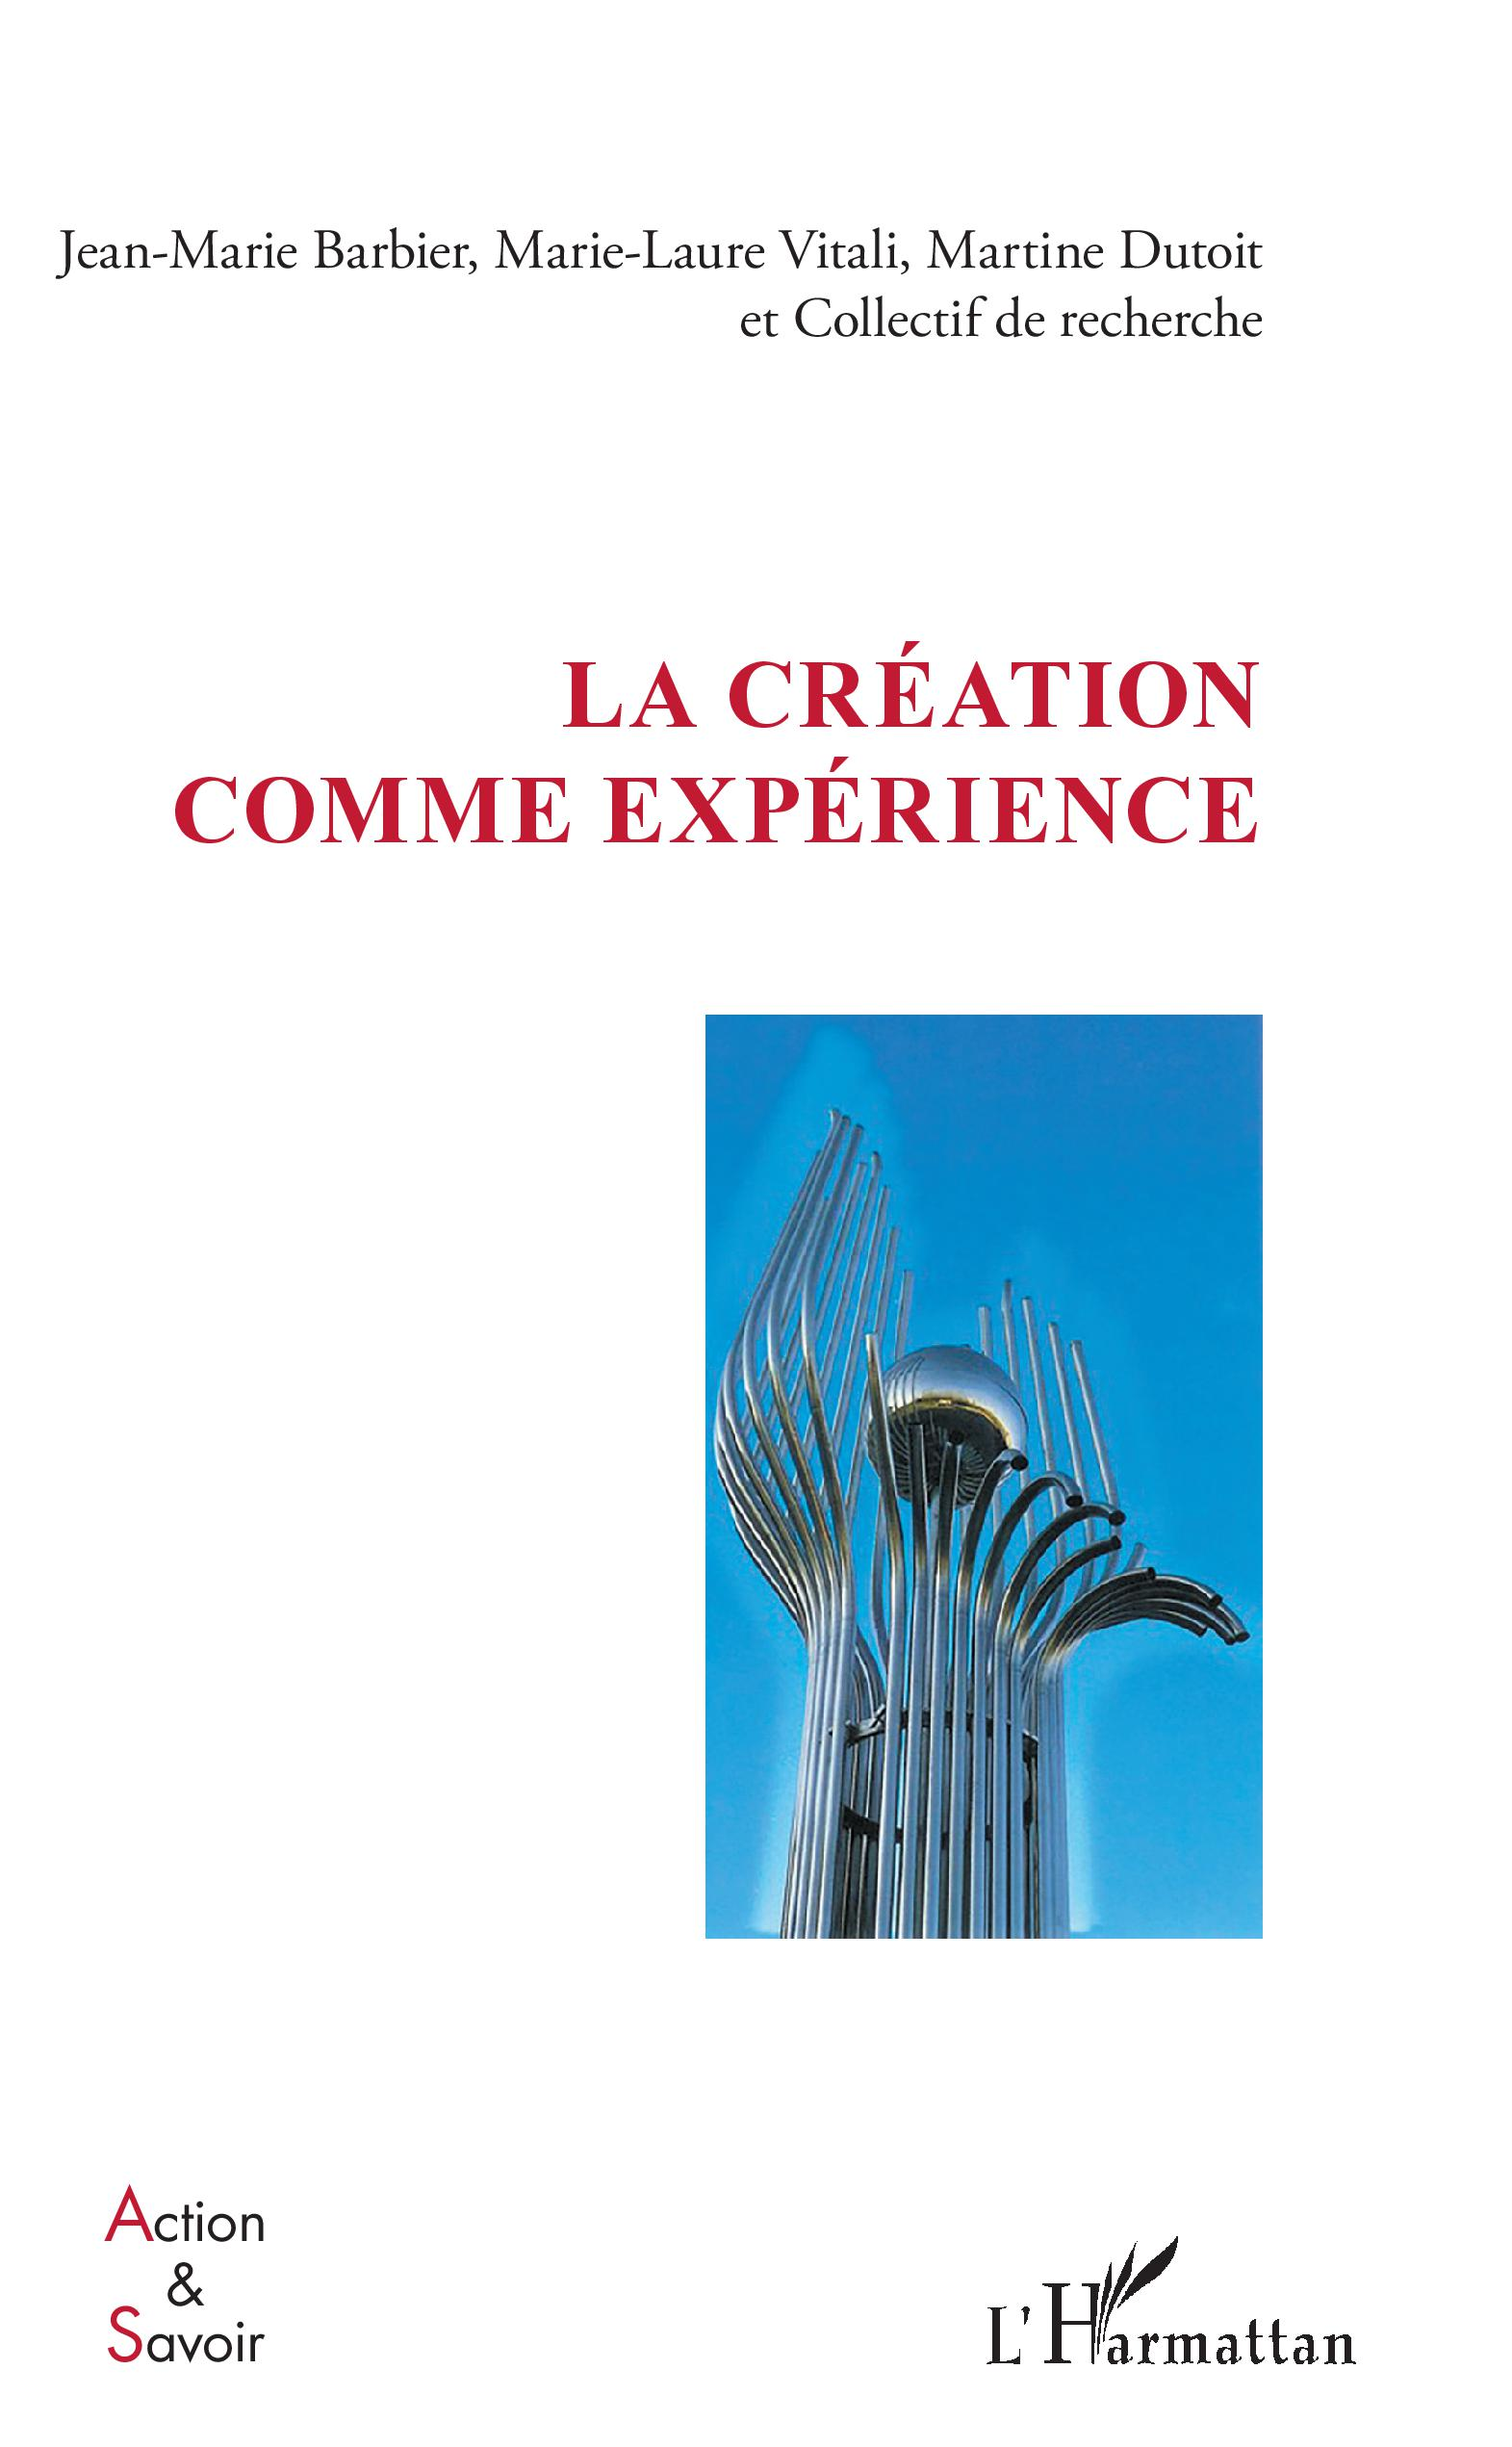 LA CREATION COMME EXPERIENCE